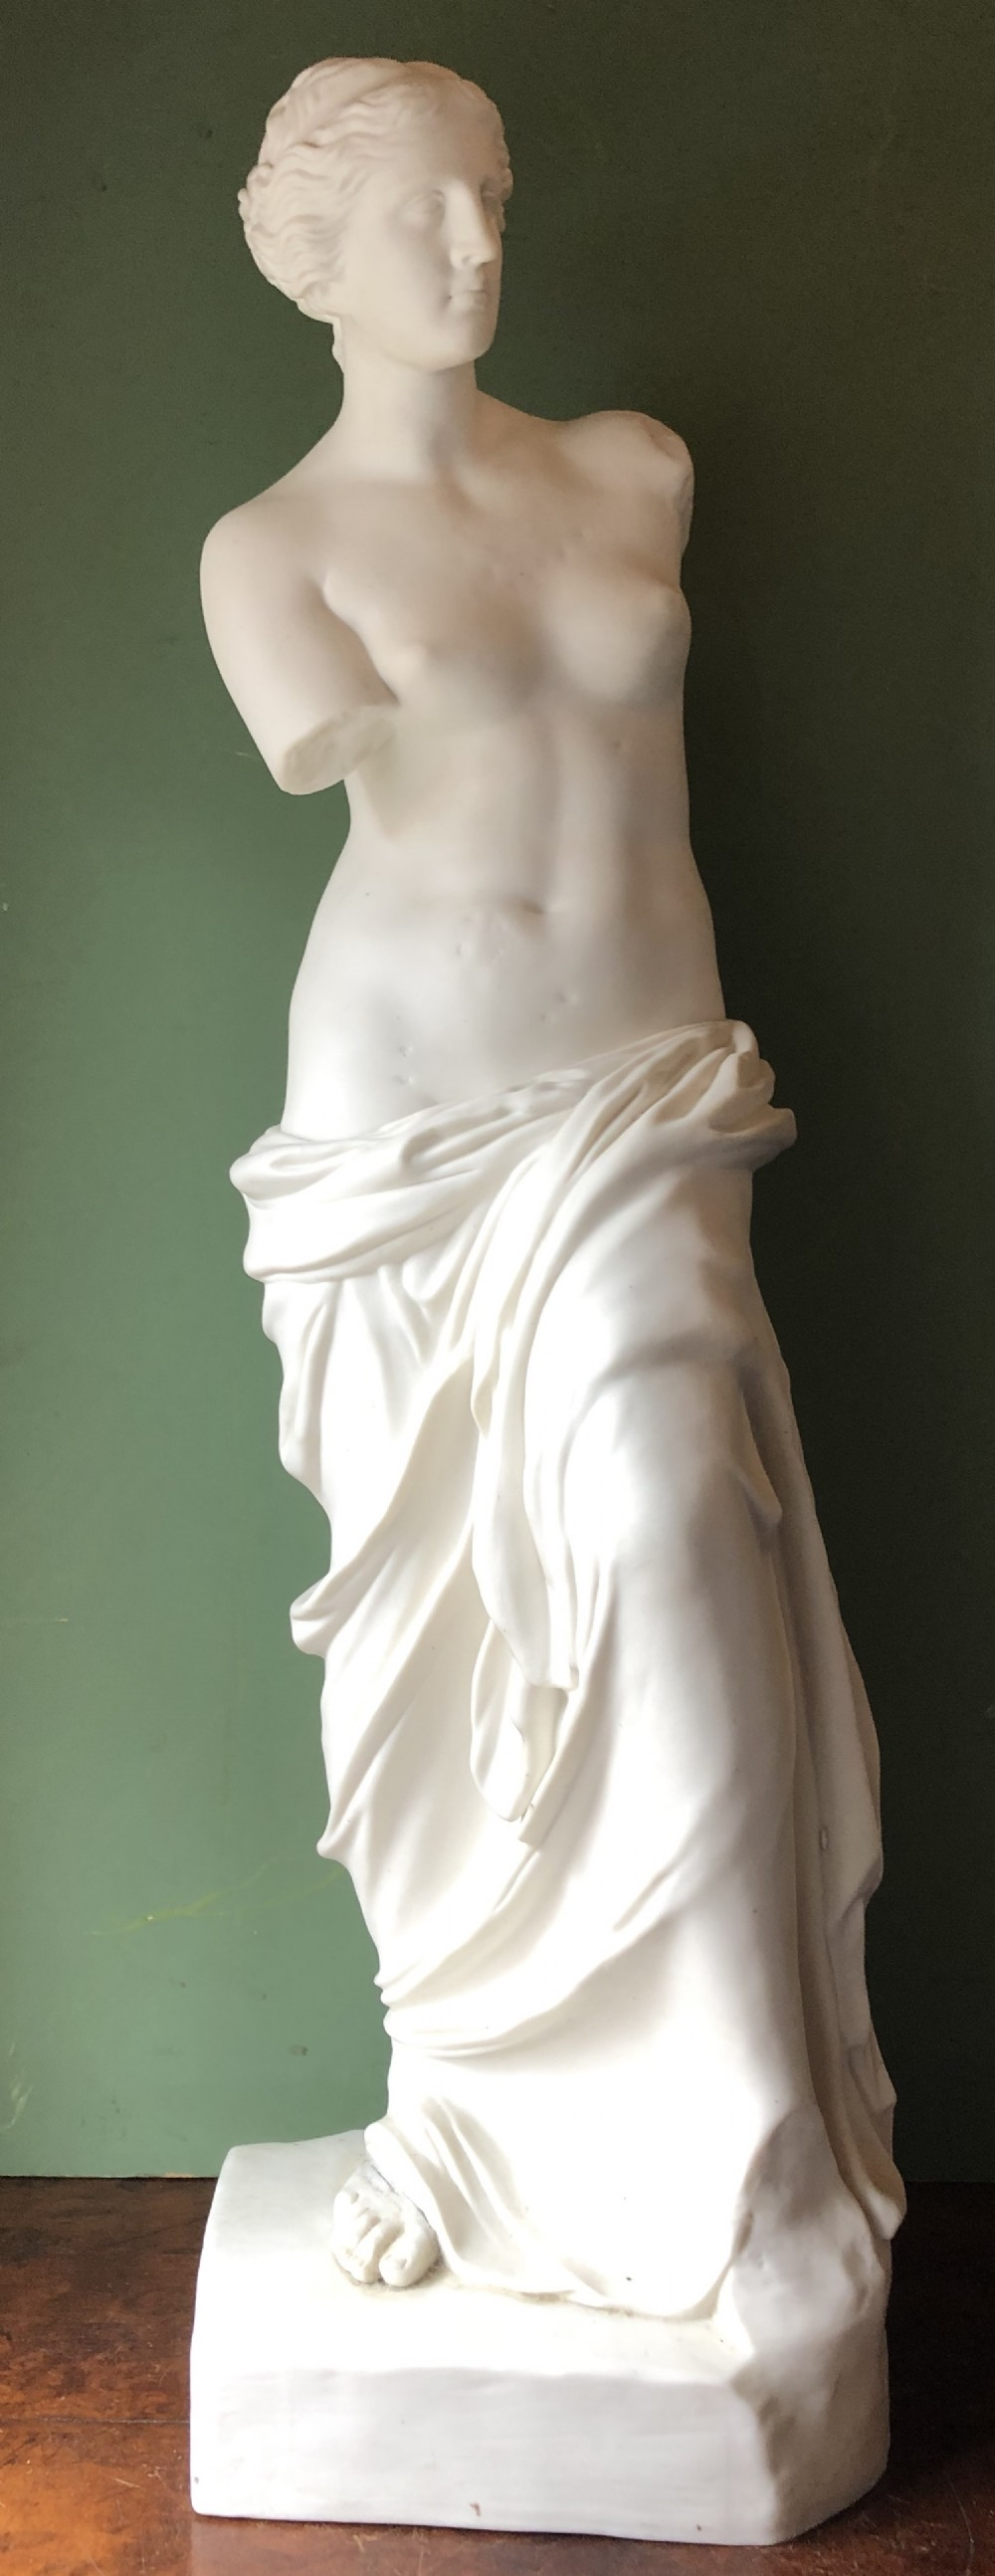 large scale c19th parianware porcelain copy of the venus de milo